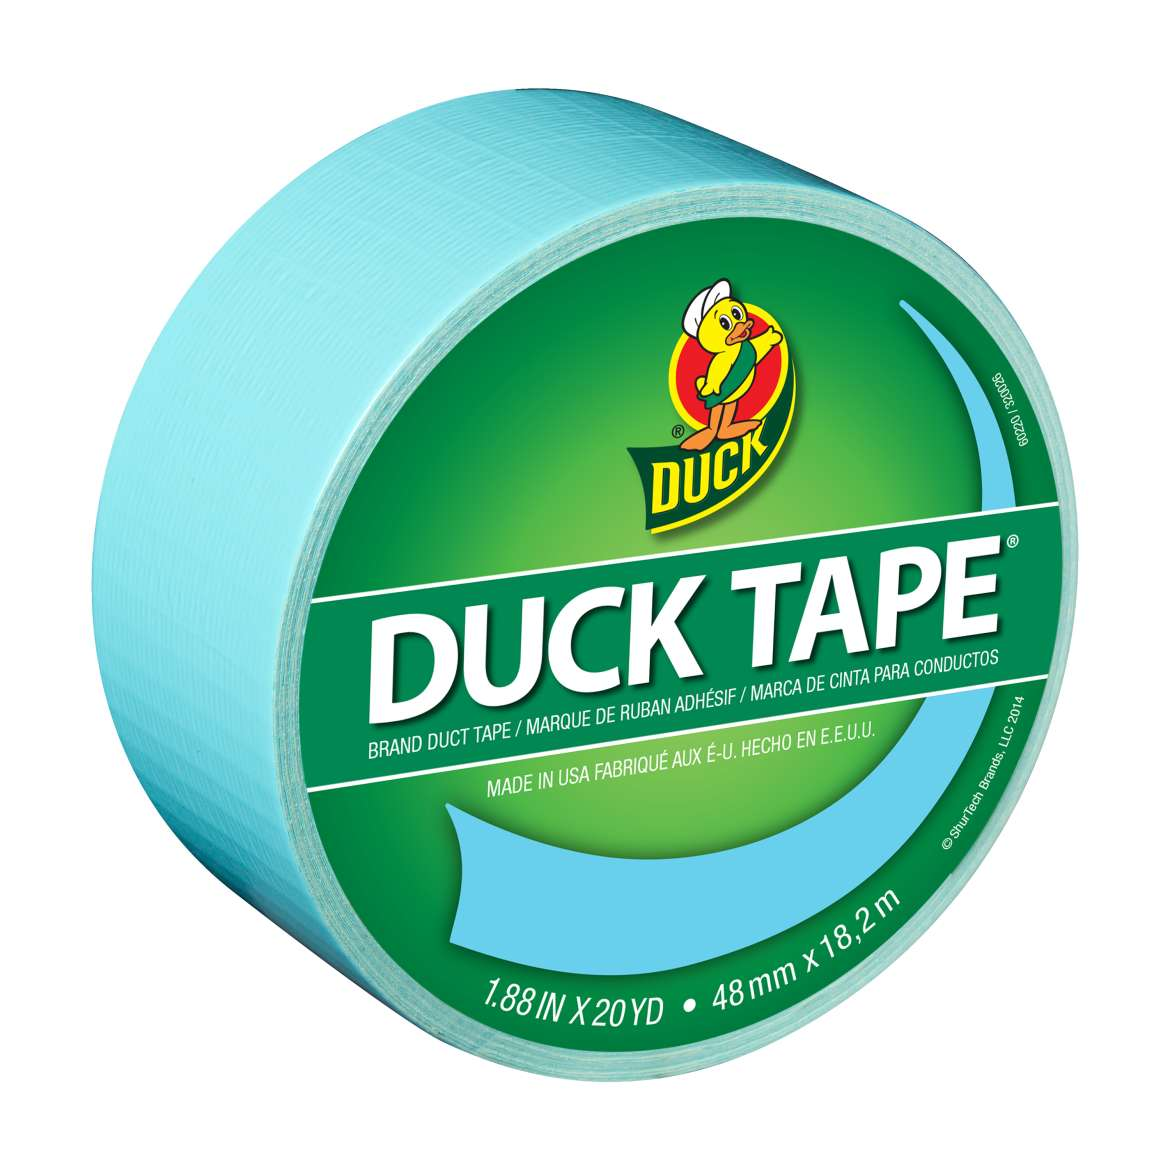 Color Duck Tape® Brand Duct Tape - Icy Blue, 1.88 in. x 20 yd. Image